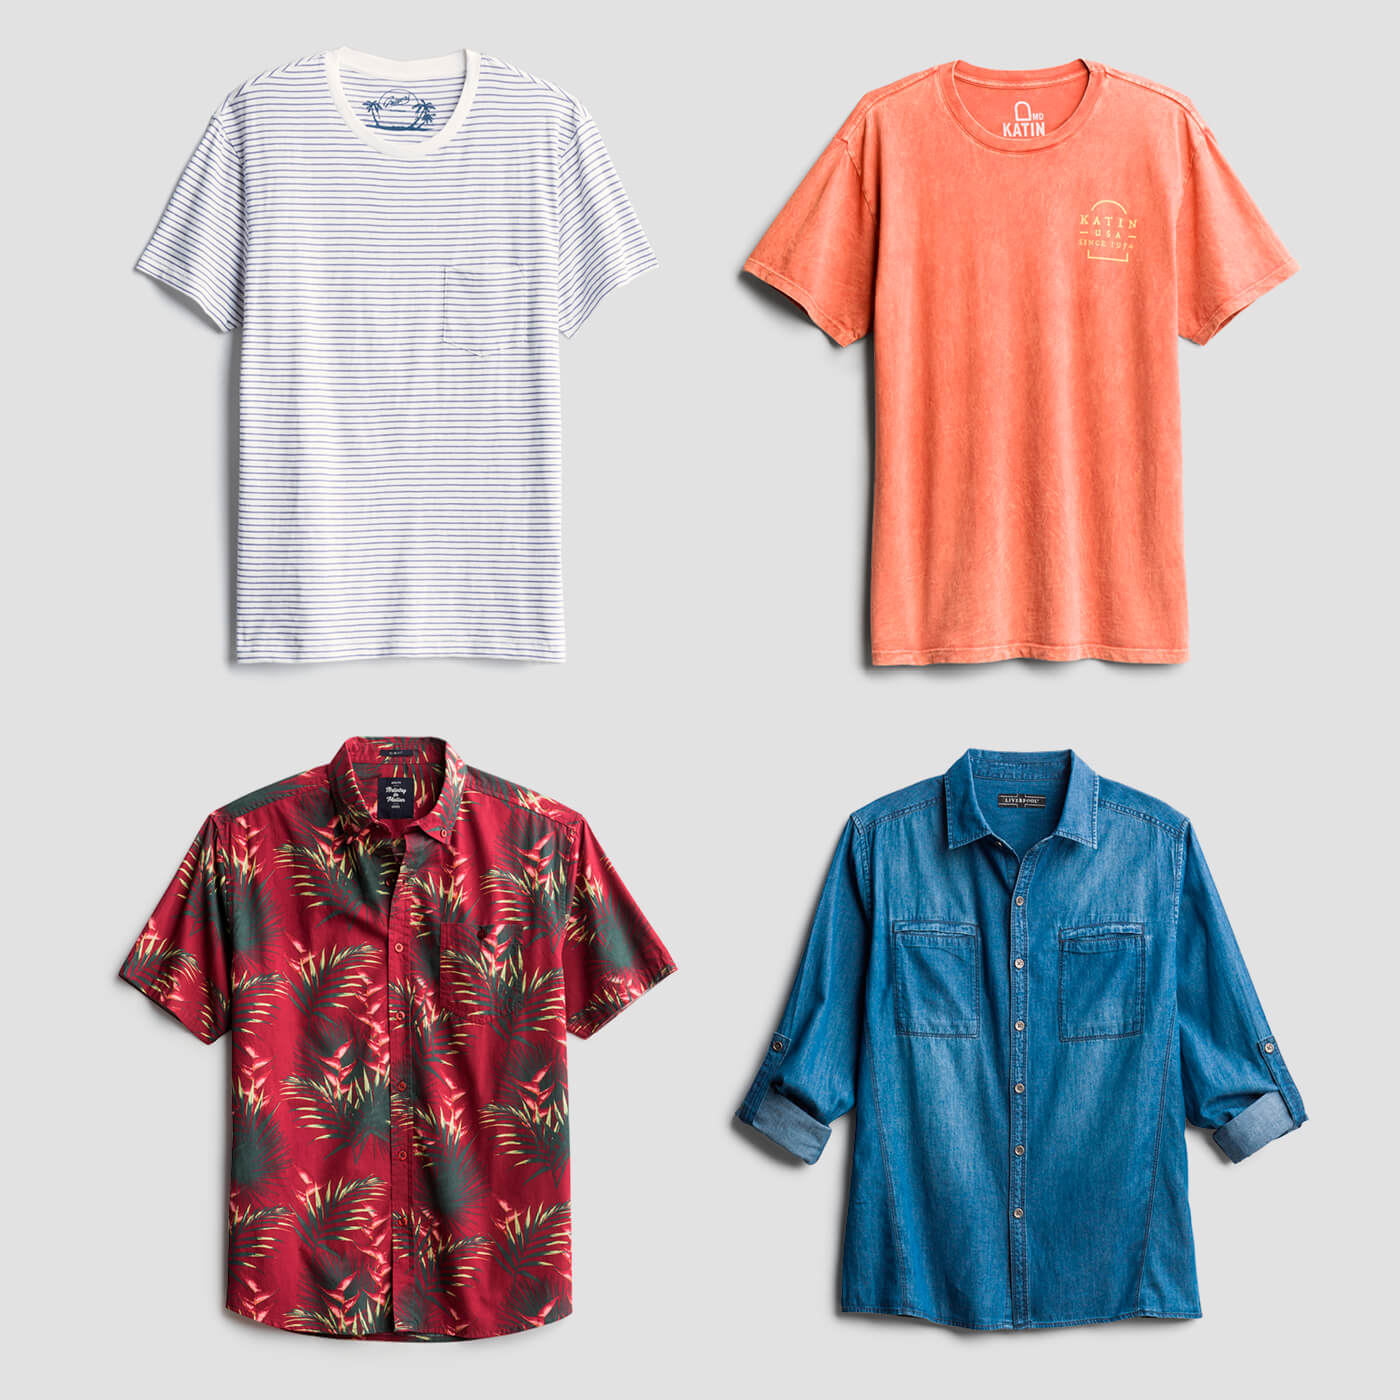 shirts for men's festival outfits